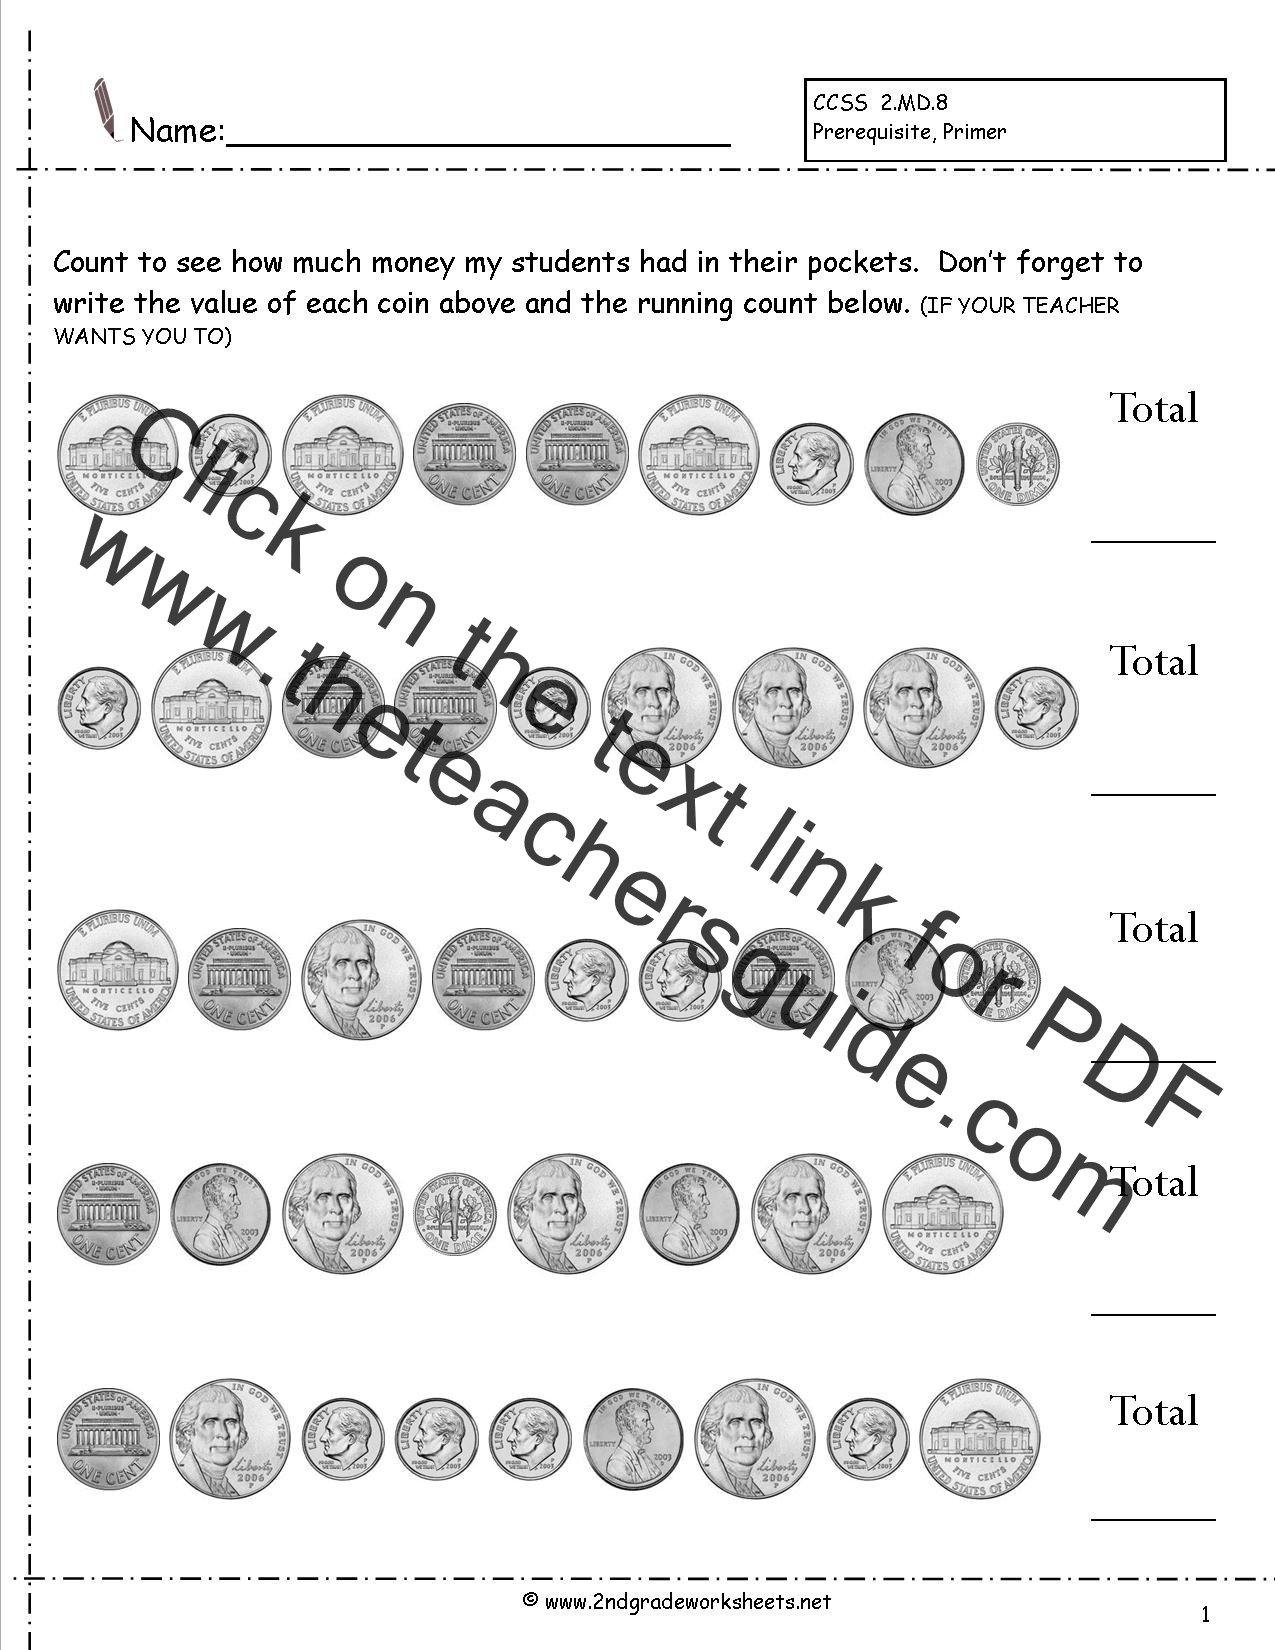 Free Printable Counting Money Worksheets For 2nd Grade